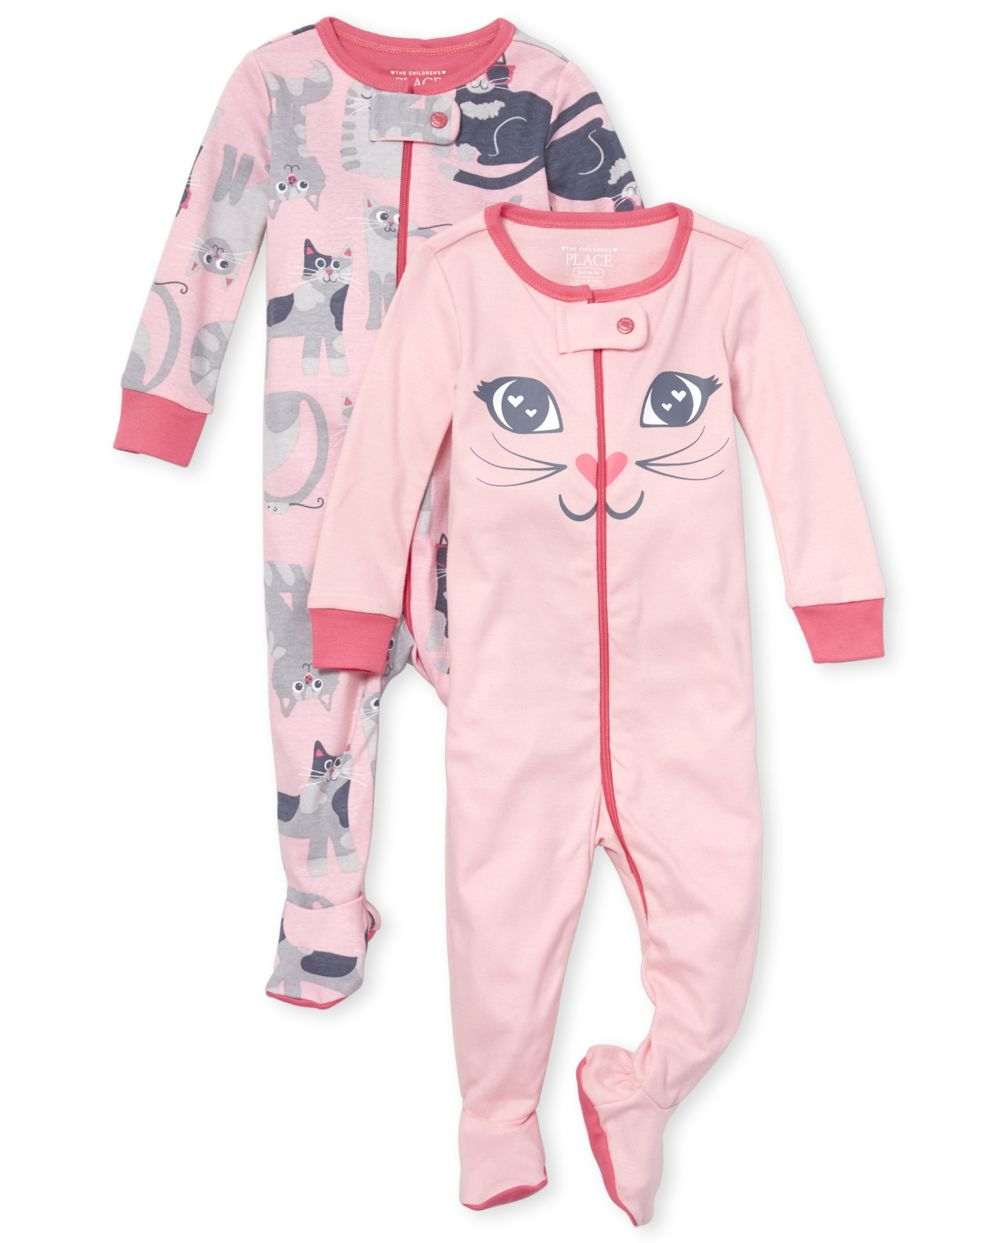 Baby And Toddler Girls Cat Snug Fit Cotton One Piece Pajamas 2-Pack